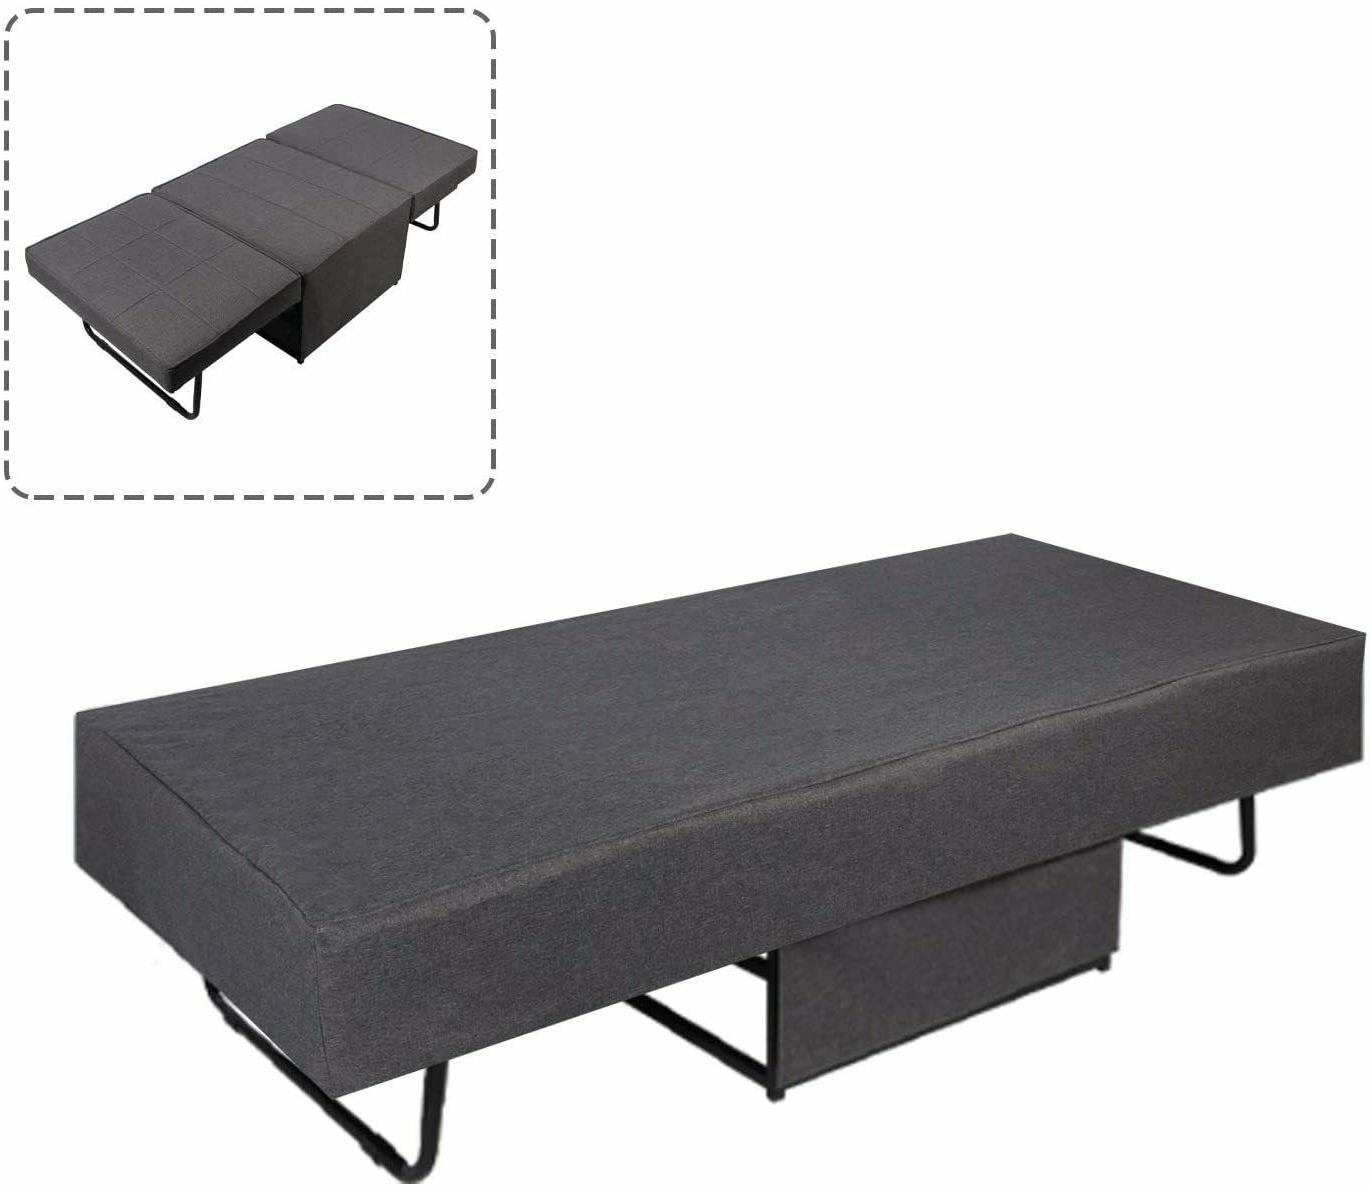 Sleeper Pull Out Lounger Ottoman